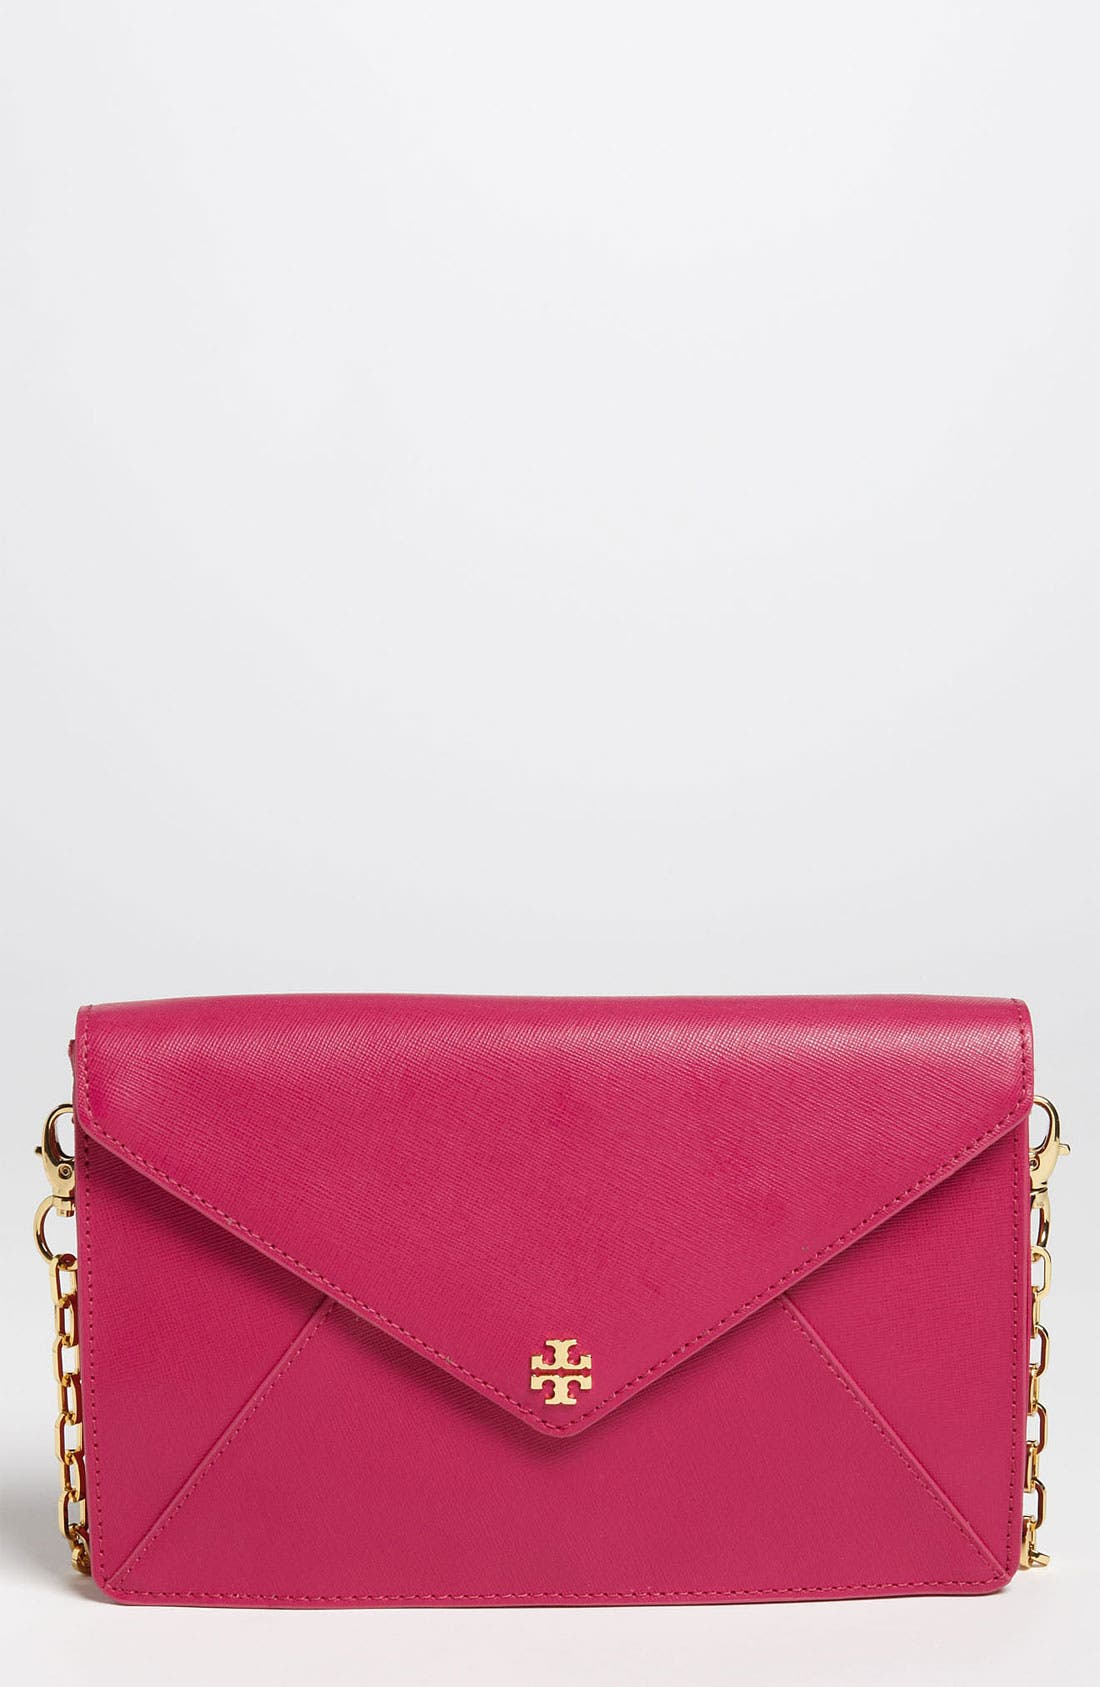 Alternate Image 1 Selected - Tory Burch 'Robinson' Envelope Clutch